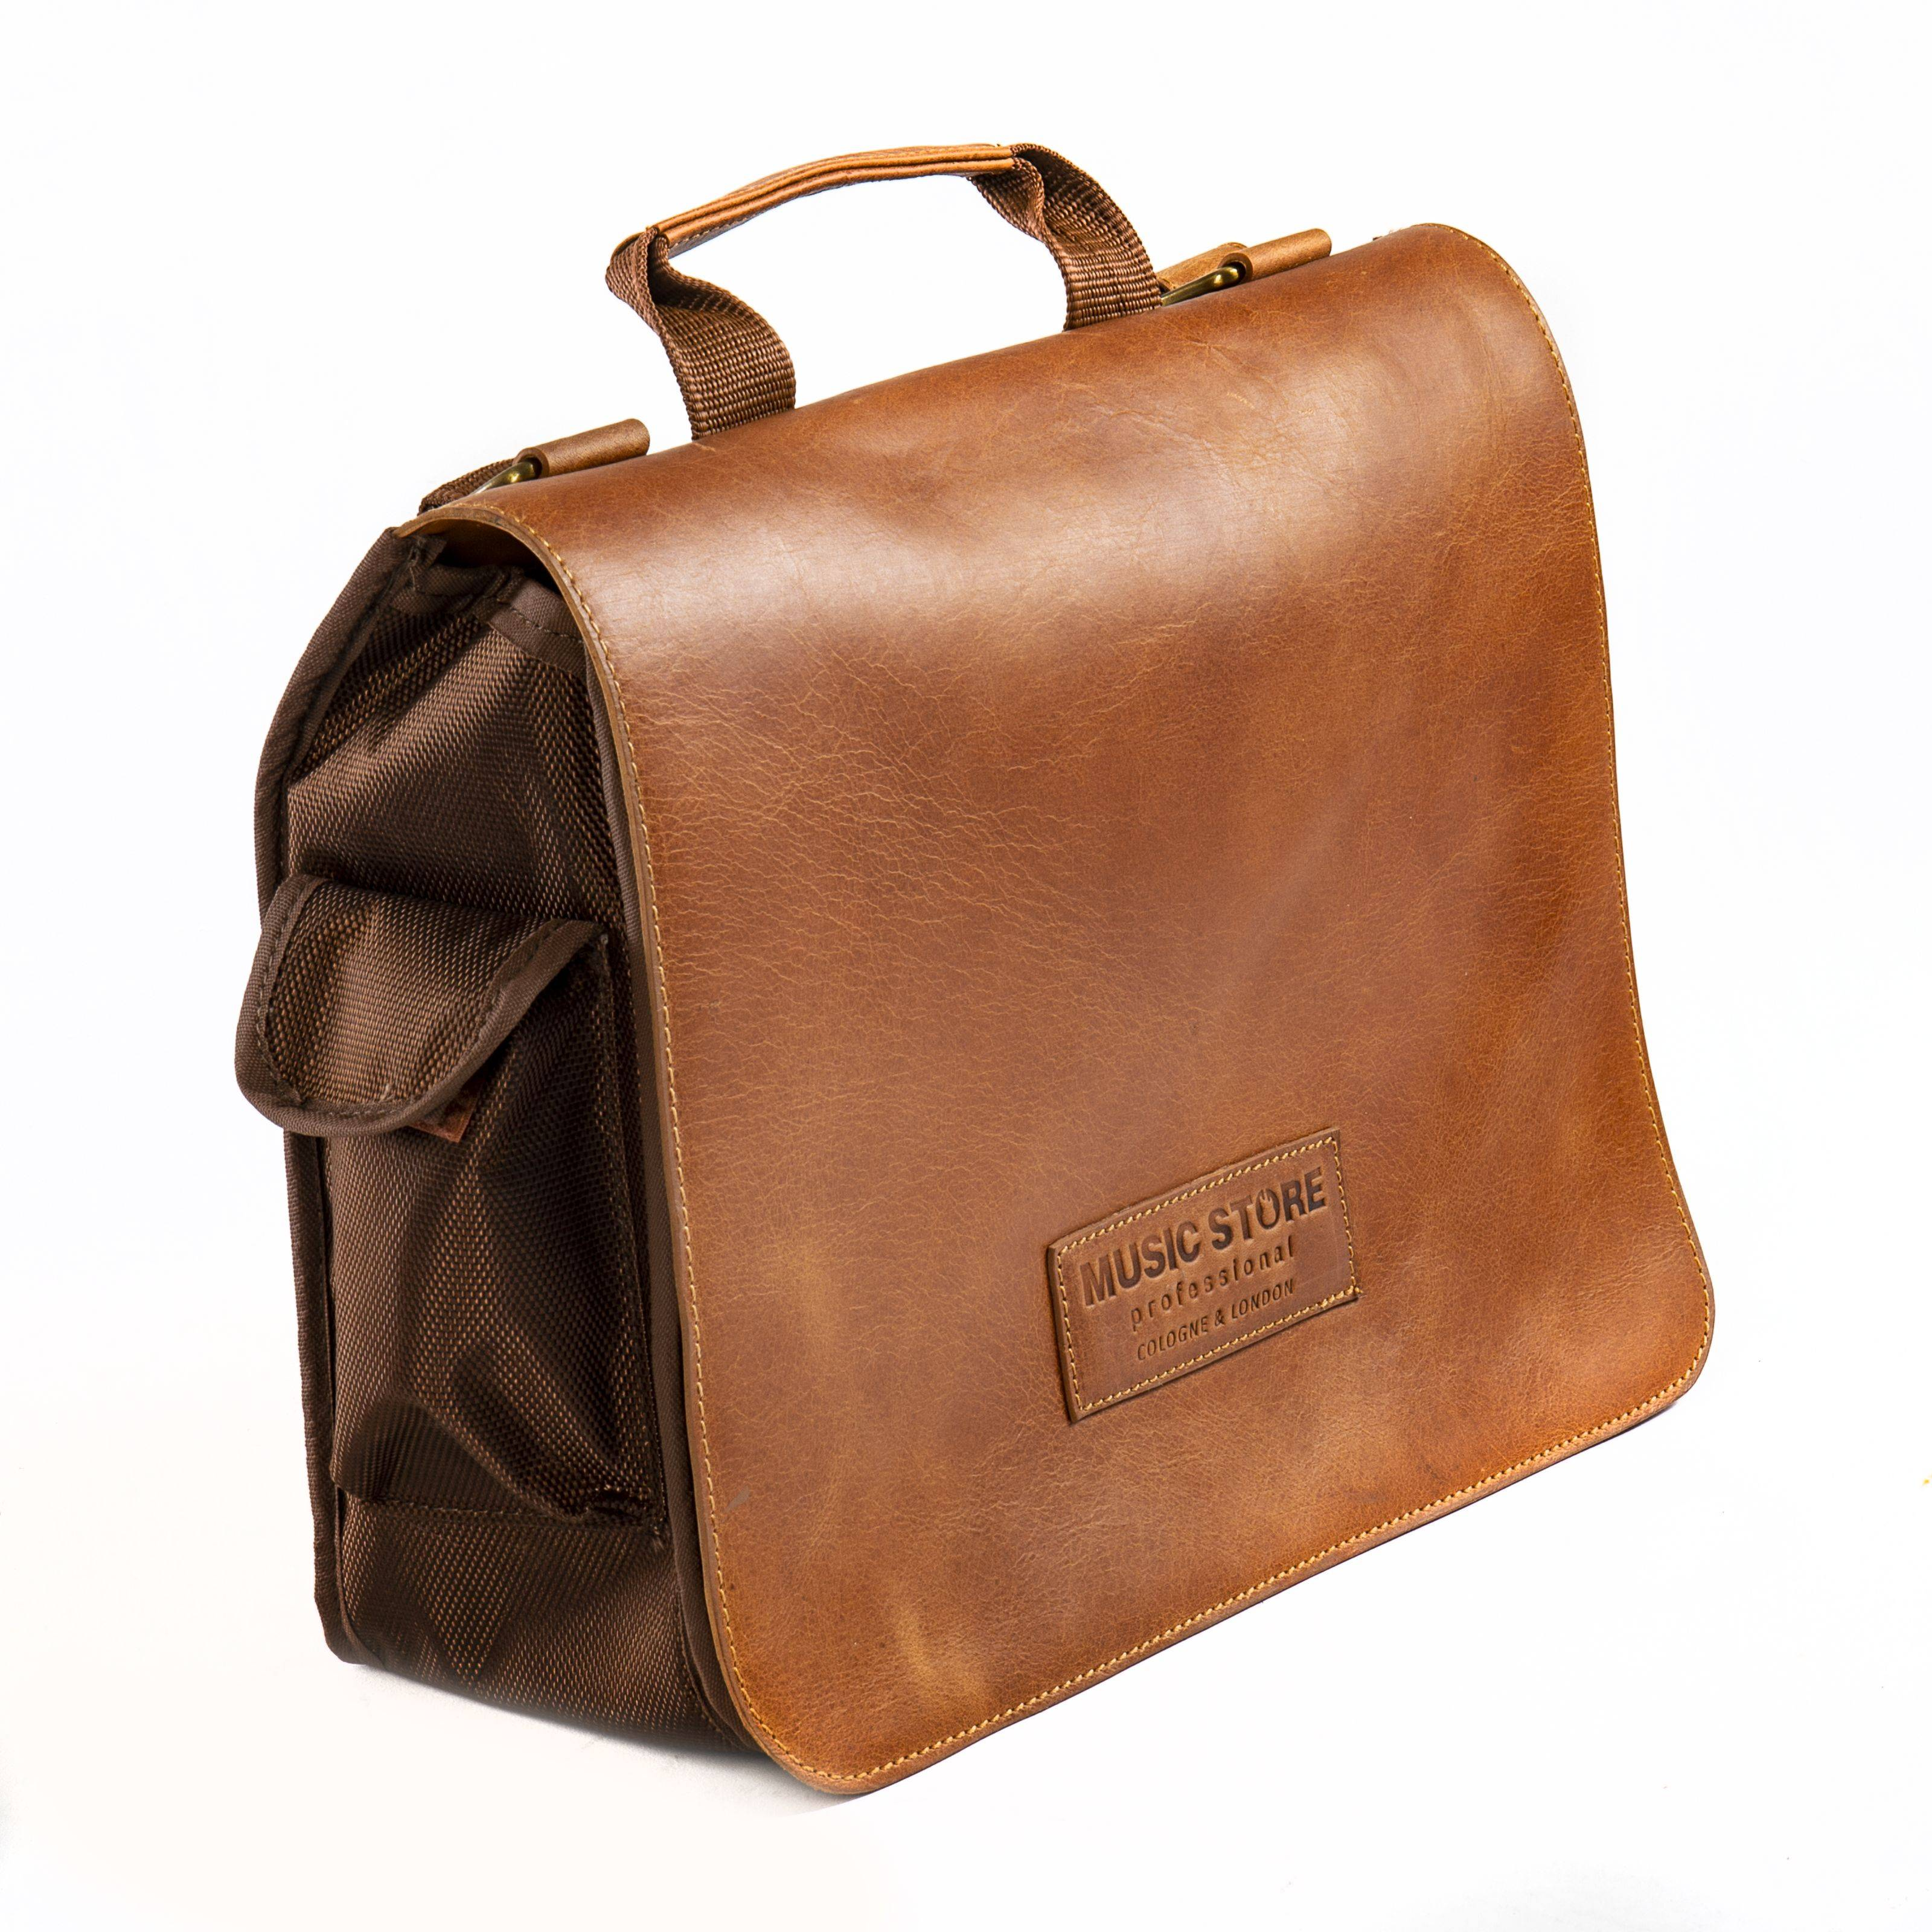 MUSIC STORE Executive Bag,w.front Leather, natural L2, embo. logo